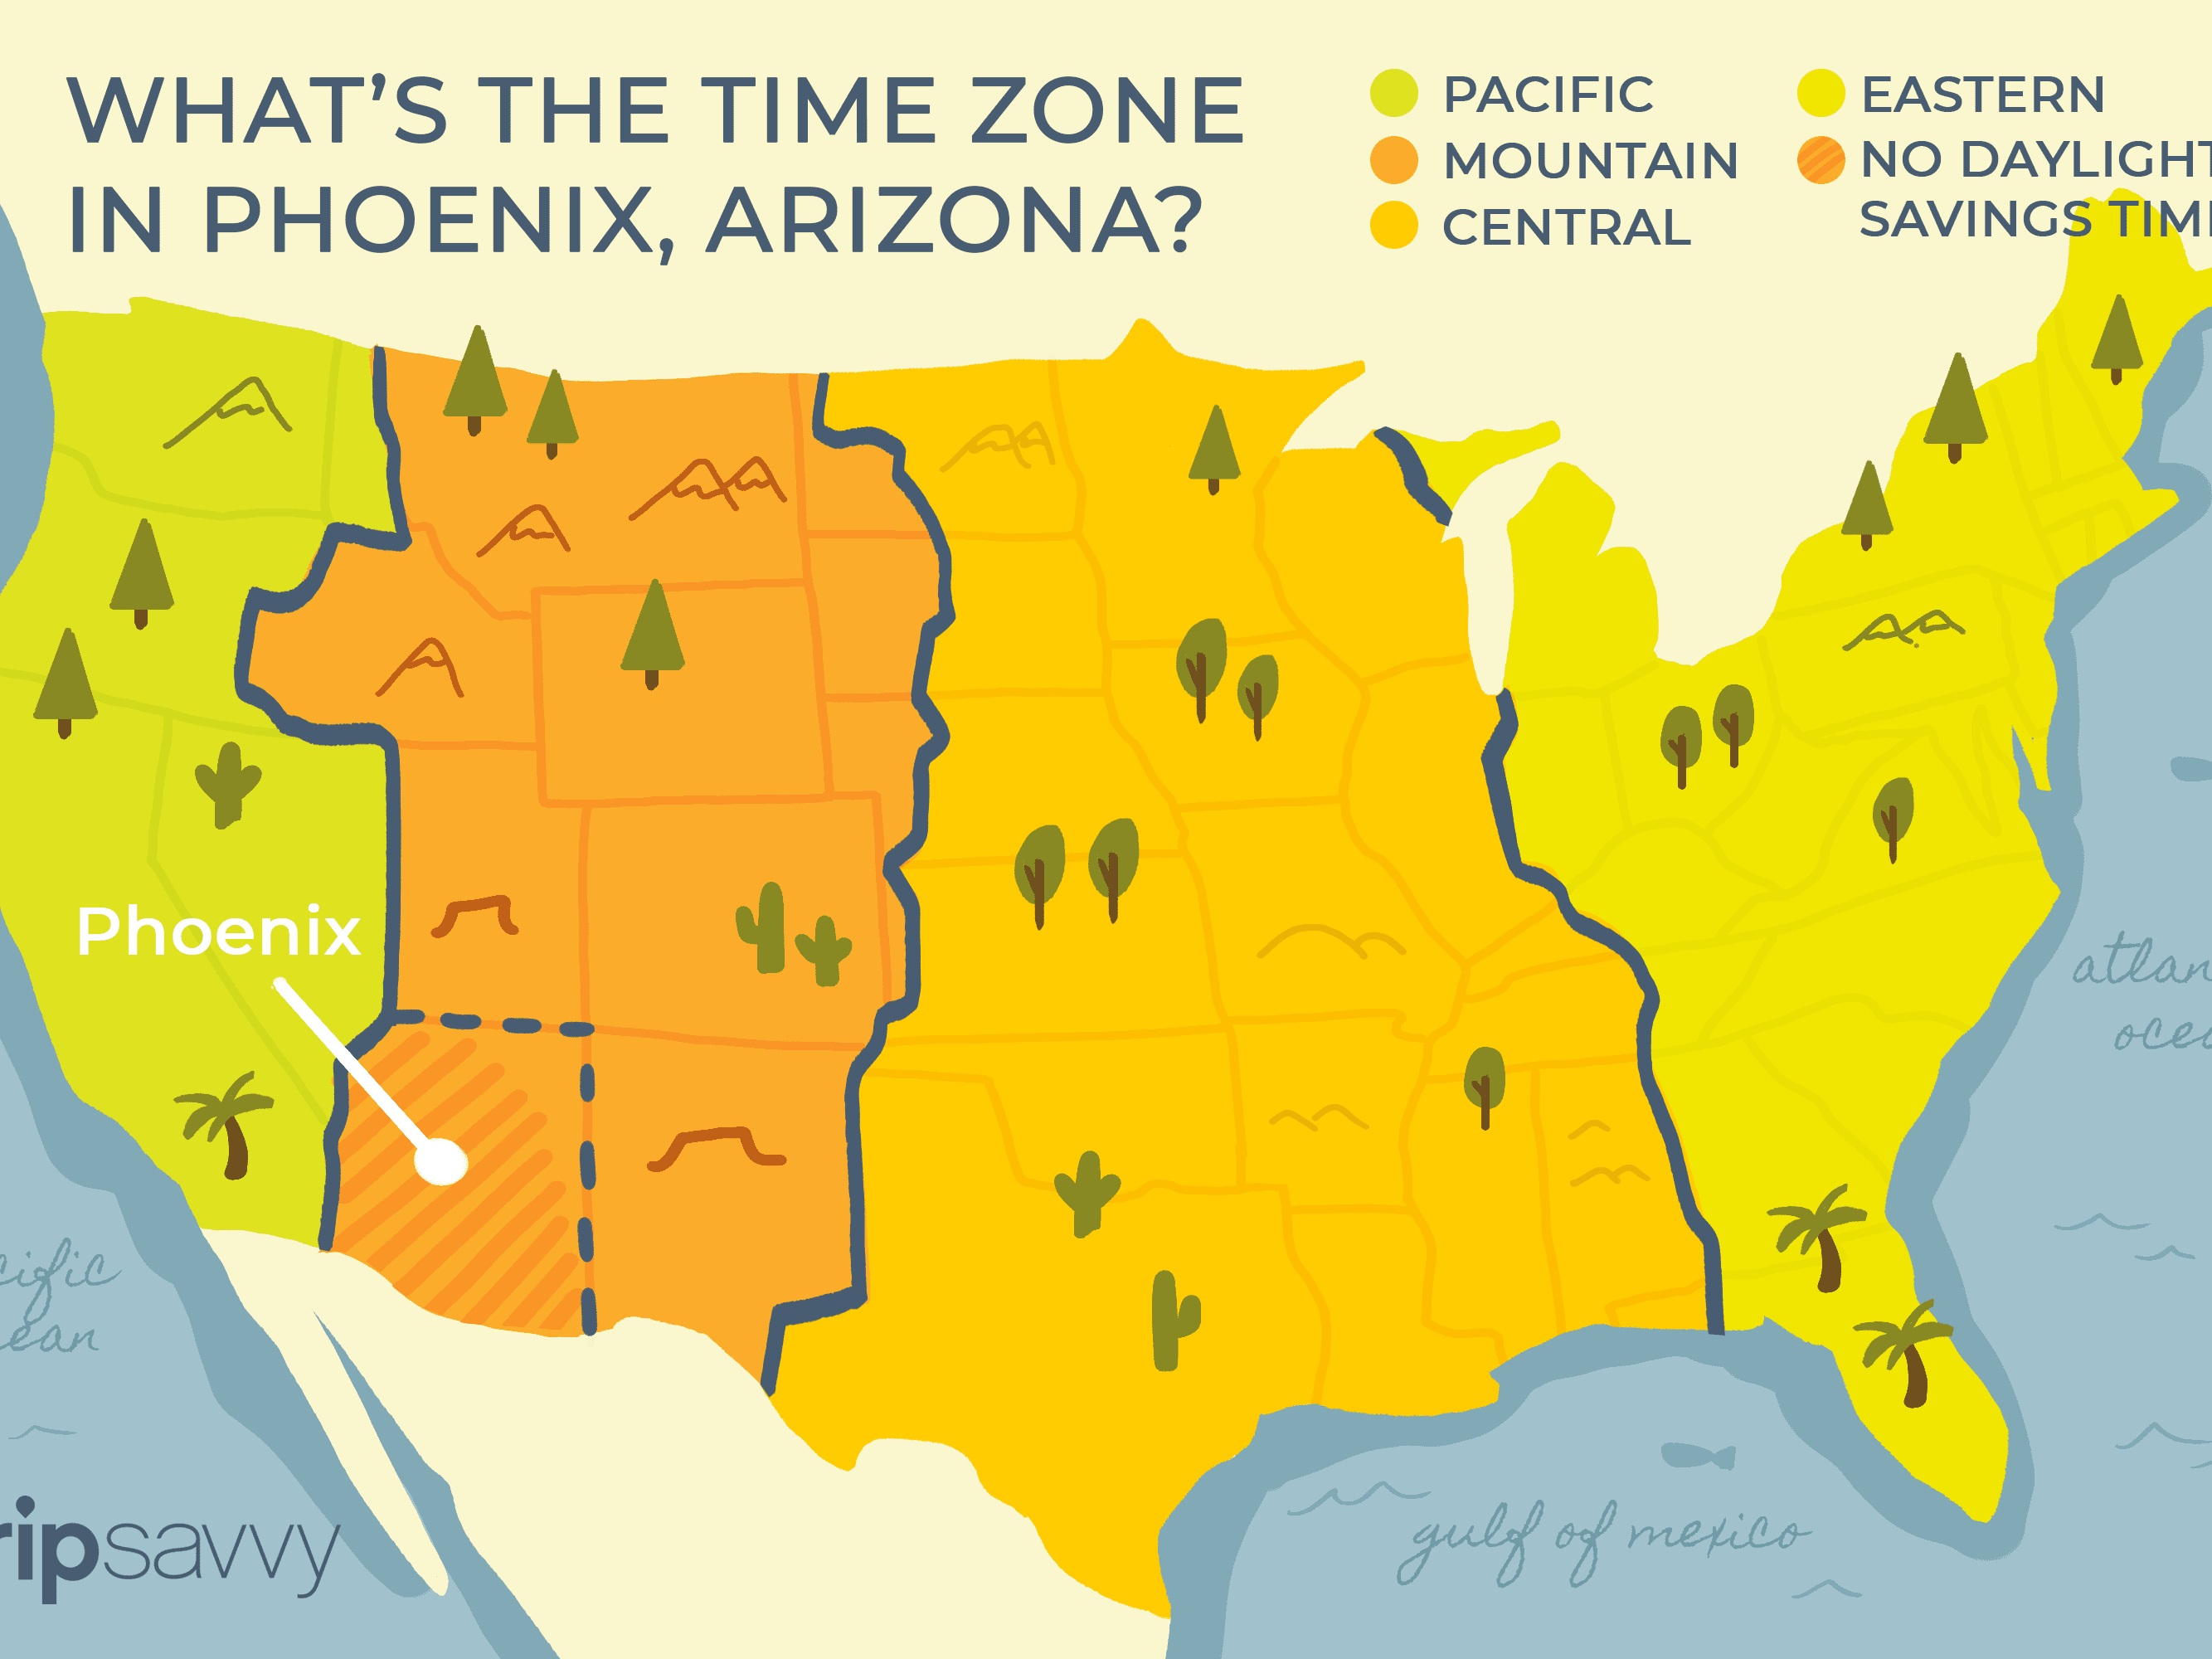 What is the current local time in Phoenix, Arizona?